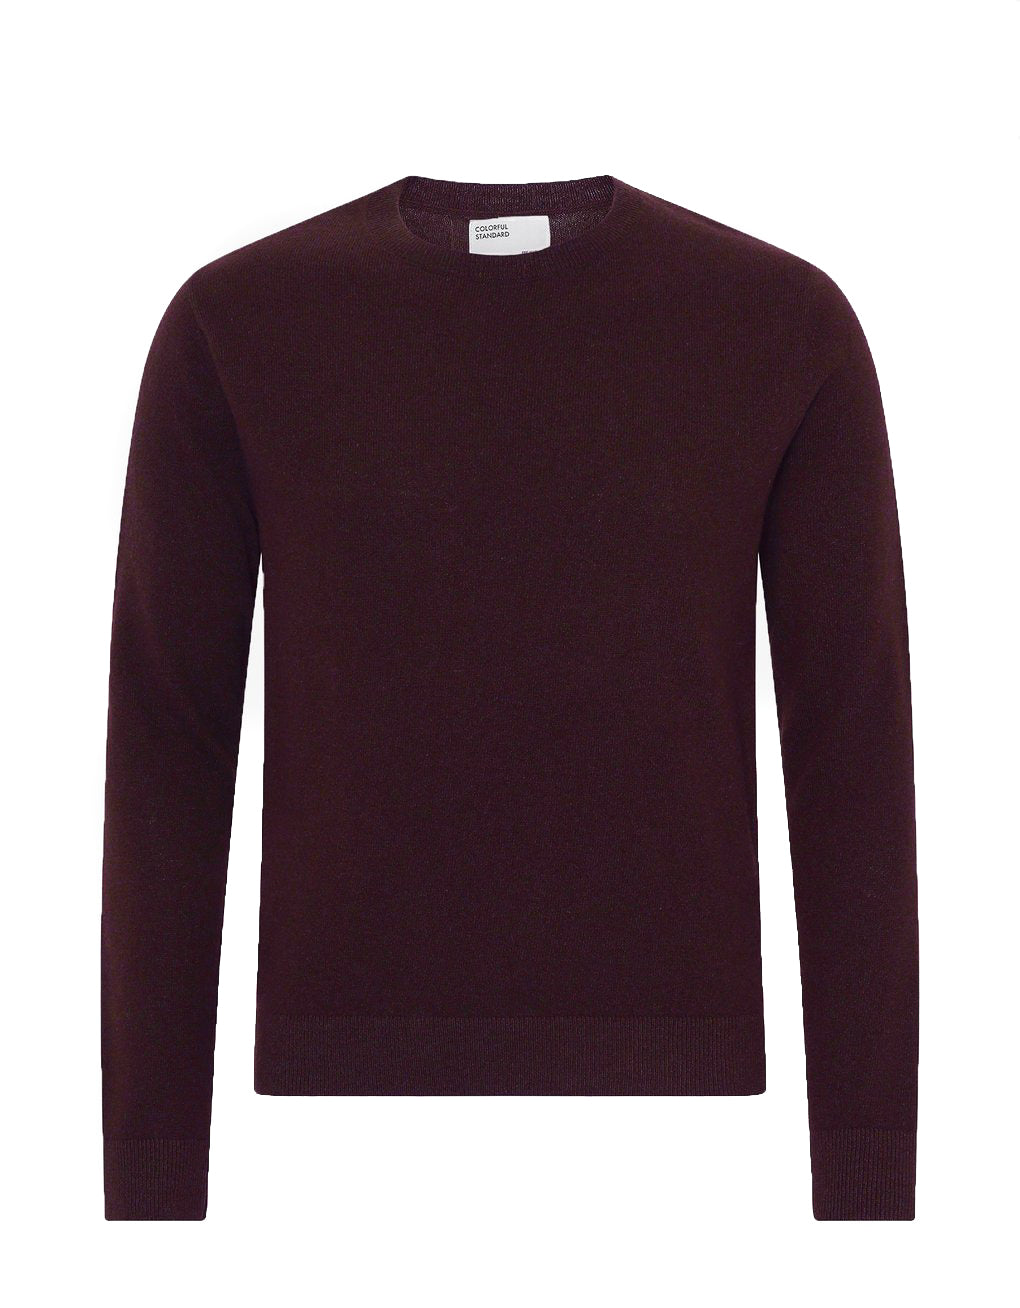 Colorful Standard Light Merino Wool Crew oxblood red